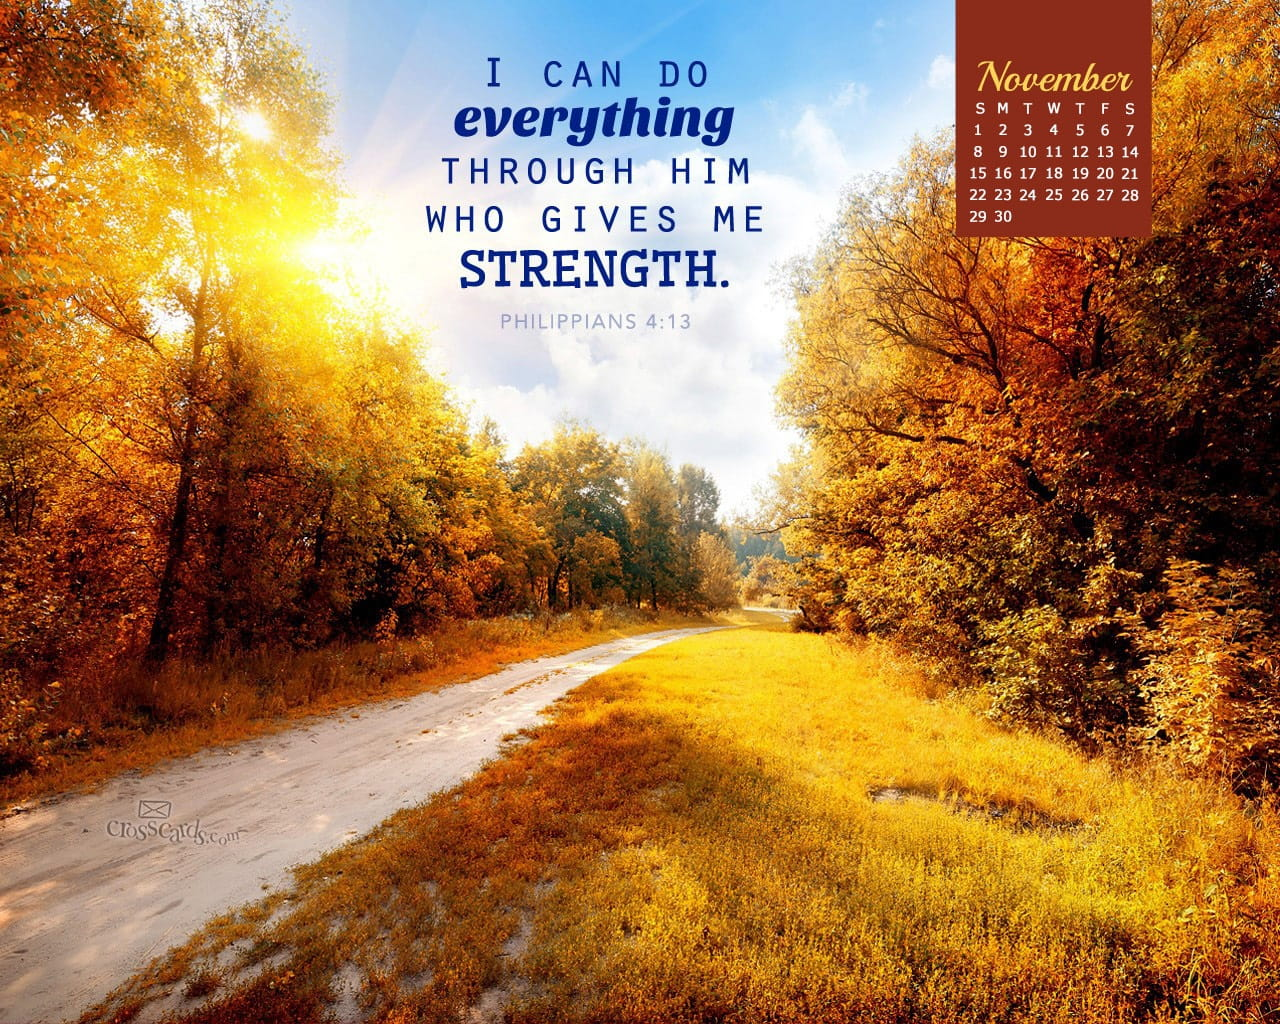 November 2015 Philippians 4 13 Desktop Calendar Free Monthly